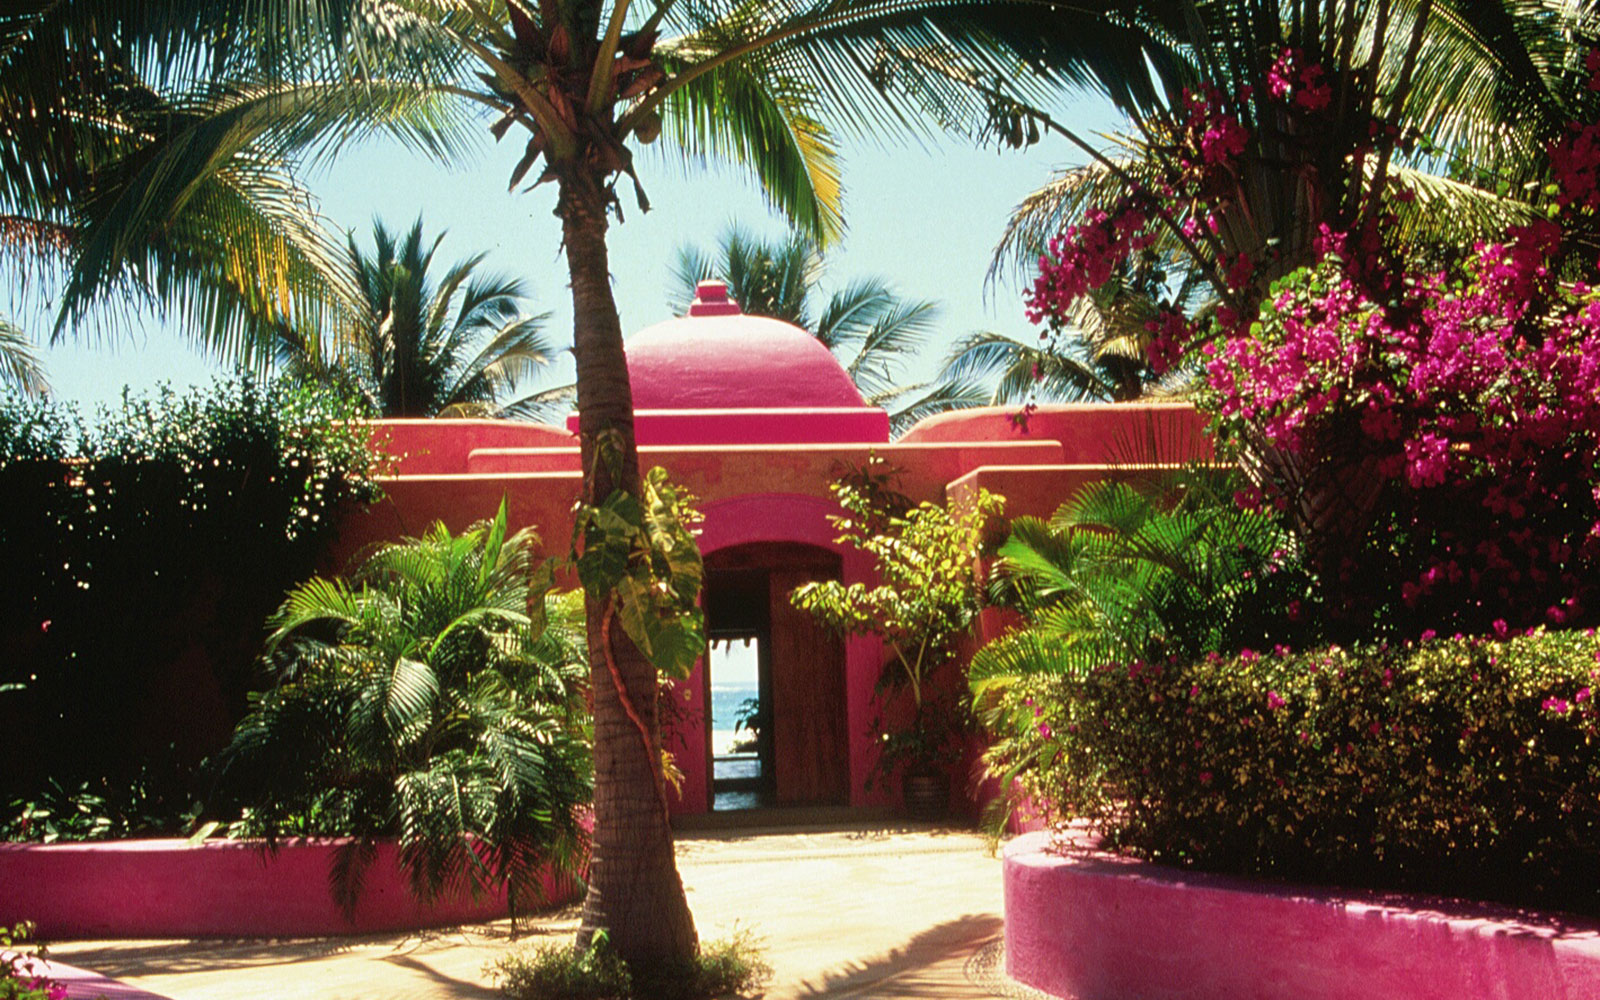 Mexico's Greenest Hotels Offer Guests a Certain 'Om'-biance: Las Alamandas in Costalegre